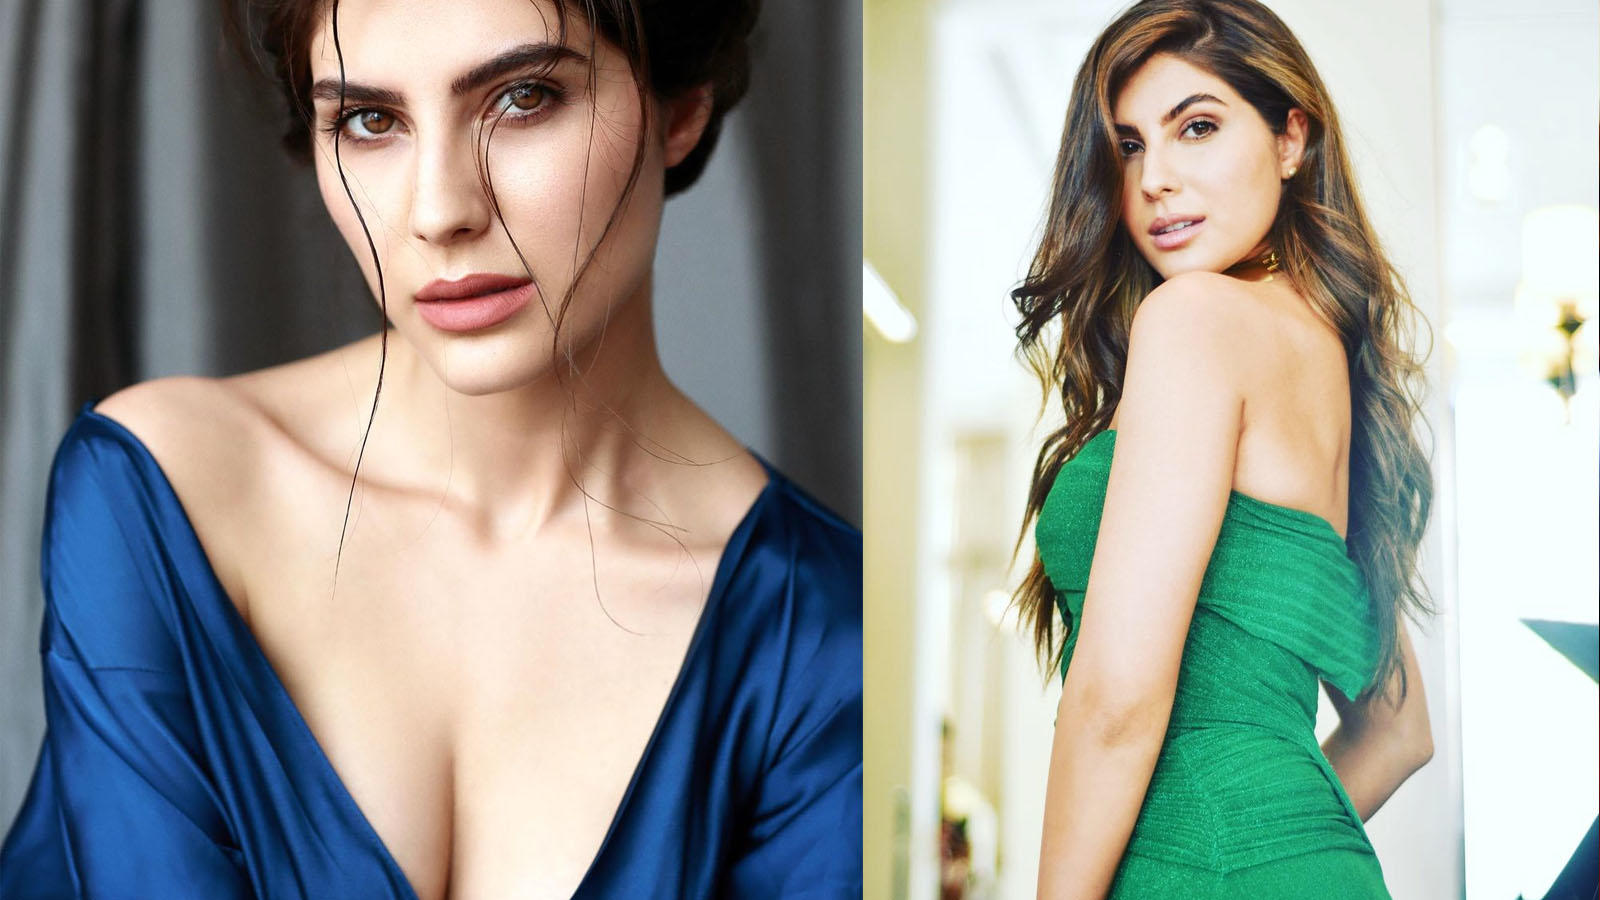 Elnaaz Norouzi talks about her struggle as an outsider: 'I still need to fight for small things' | Hindi Movie News – Bollywood – Times of India